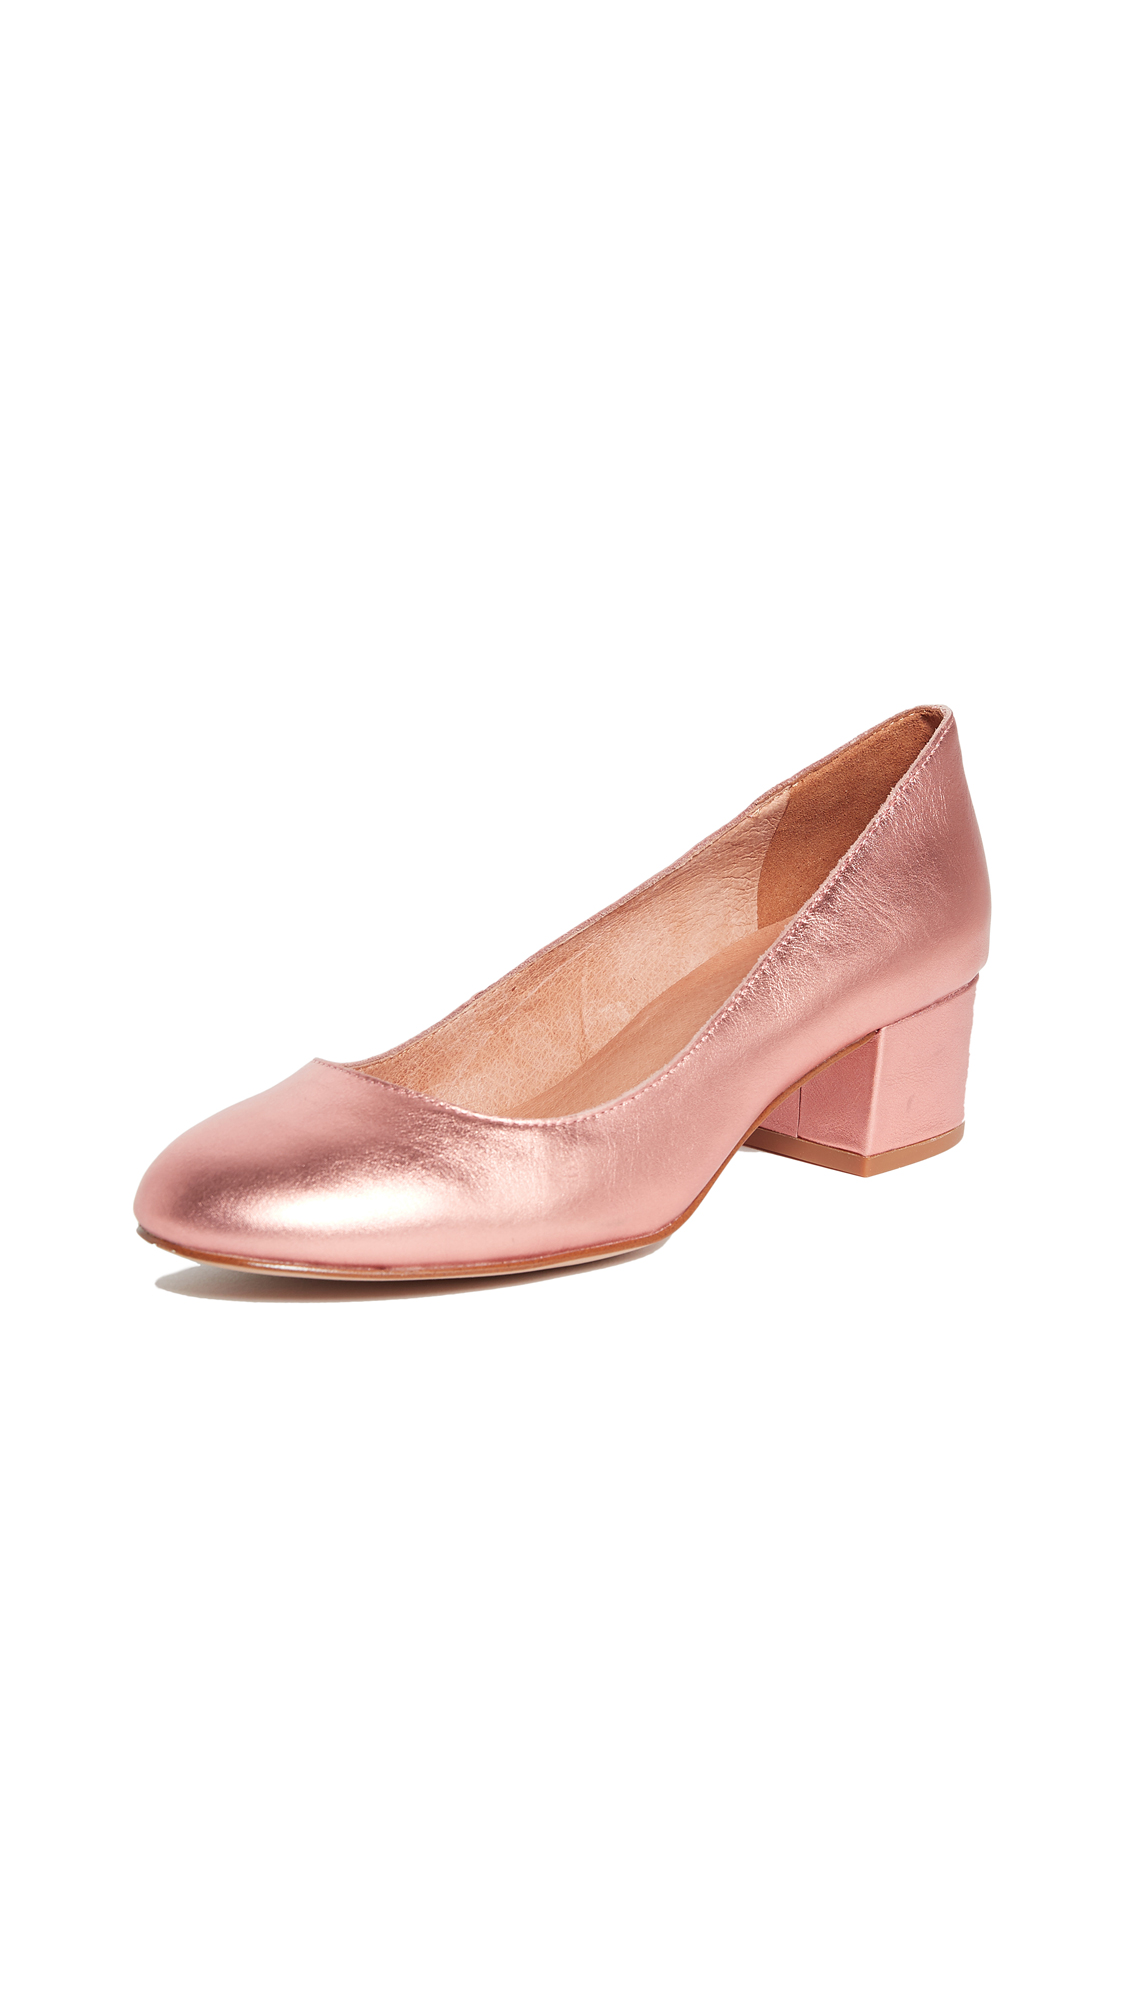 Madewell Ella Metallic Pumps - Metallic Blush